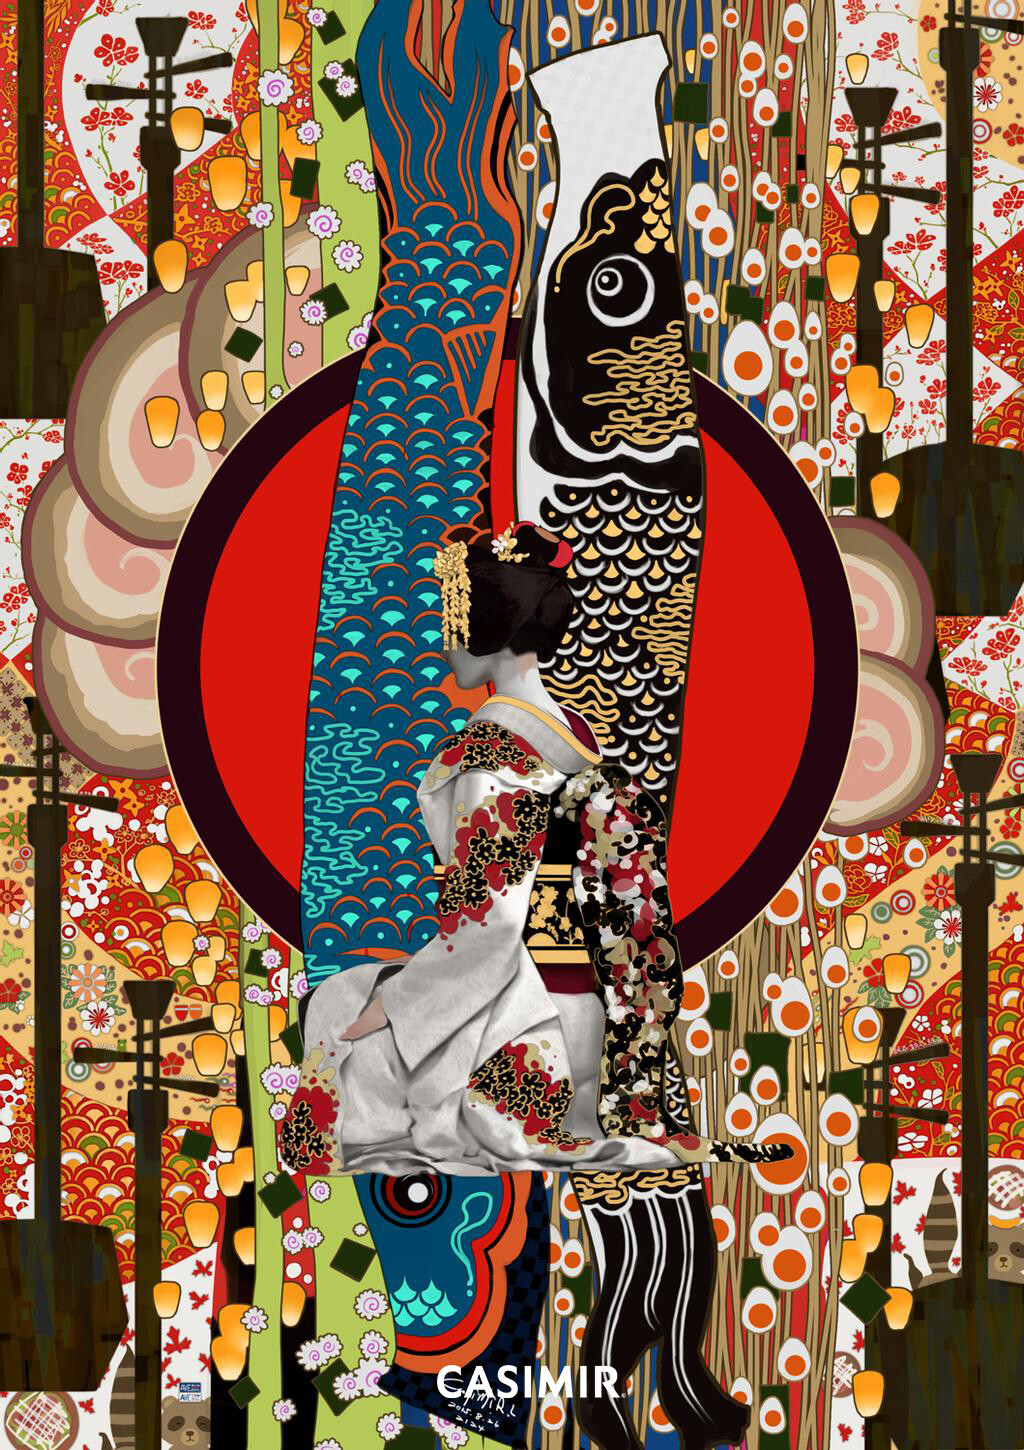 Geisha / 藝伎  Details -------------------------------------- Limited Edition of 10 (Sold Out) Size : 40(W) x 58(H) cm Numbered and signed 12 colors high-quality print on watercolor paper 2015/09 --------------------------------------